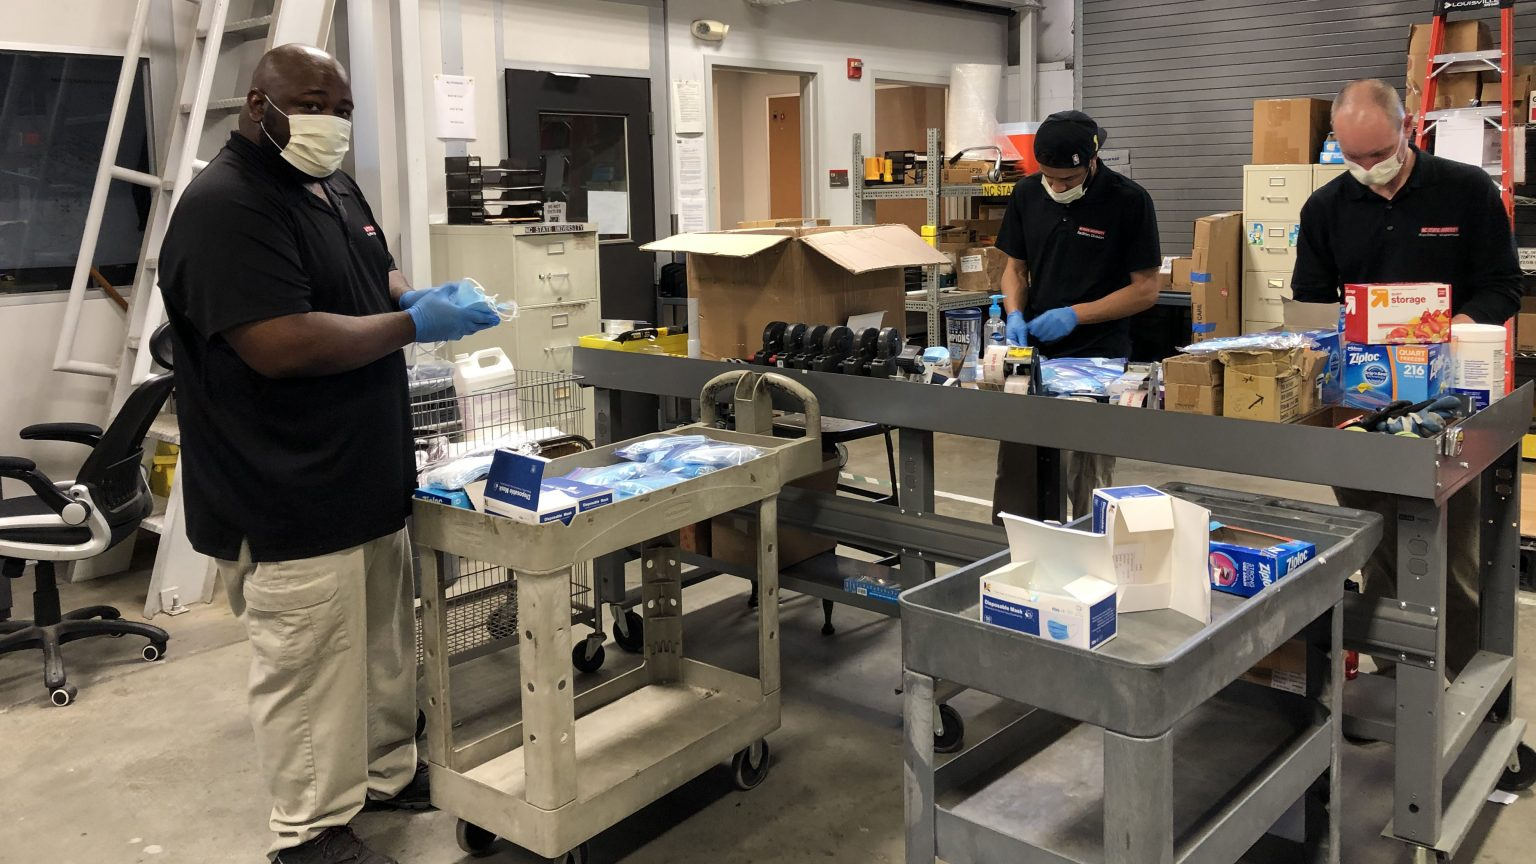 NC State facilities employees preparing materials for workers' welcome kits in a warehouse.